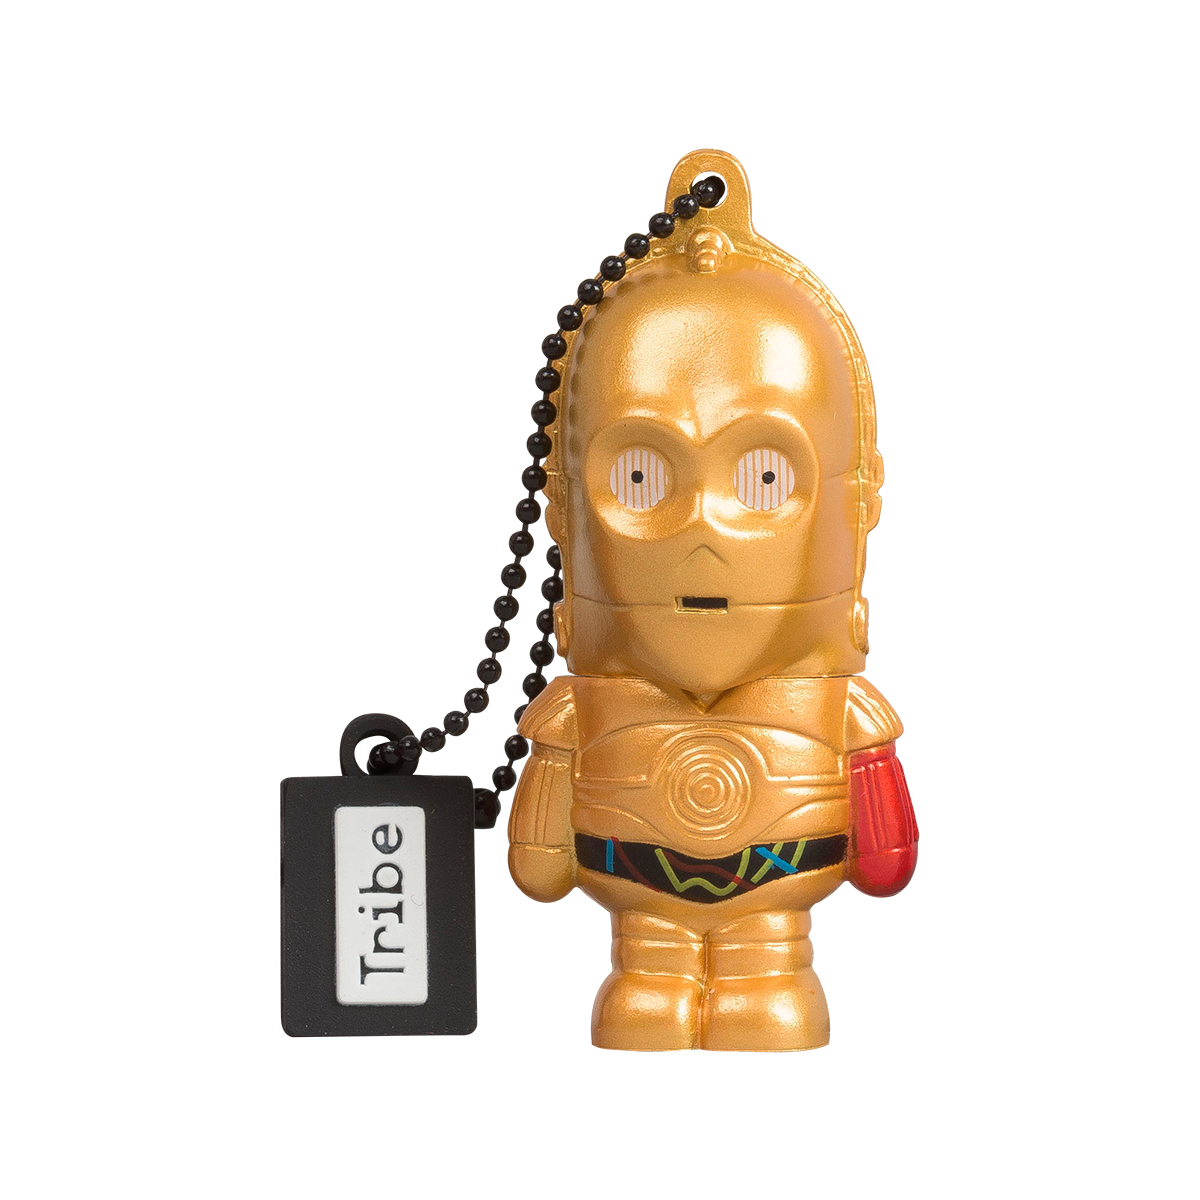 16gb star wars c3 po red usb flash drive. Black Bedroom Furniture Sets. Home Design Ideas